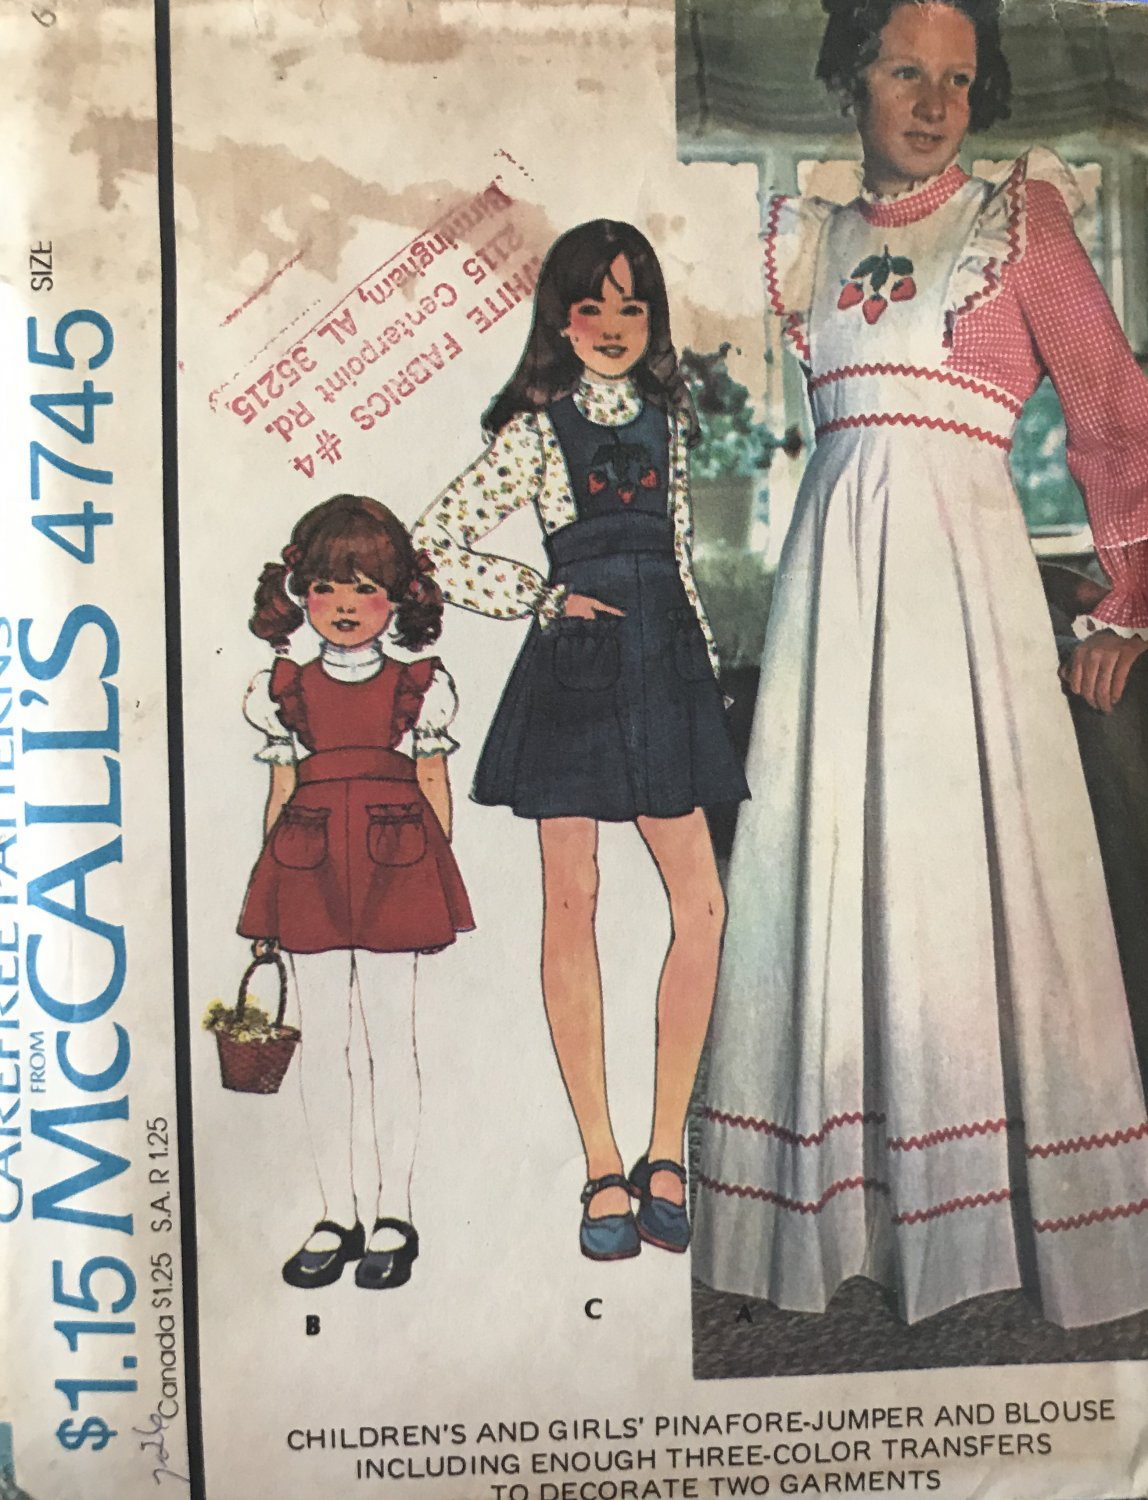 McCall's 4745 Children's and Girls' Pinafore Jumper and Blouse Sewing Pattern size 6